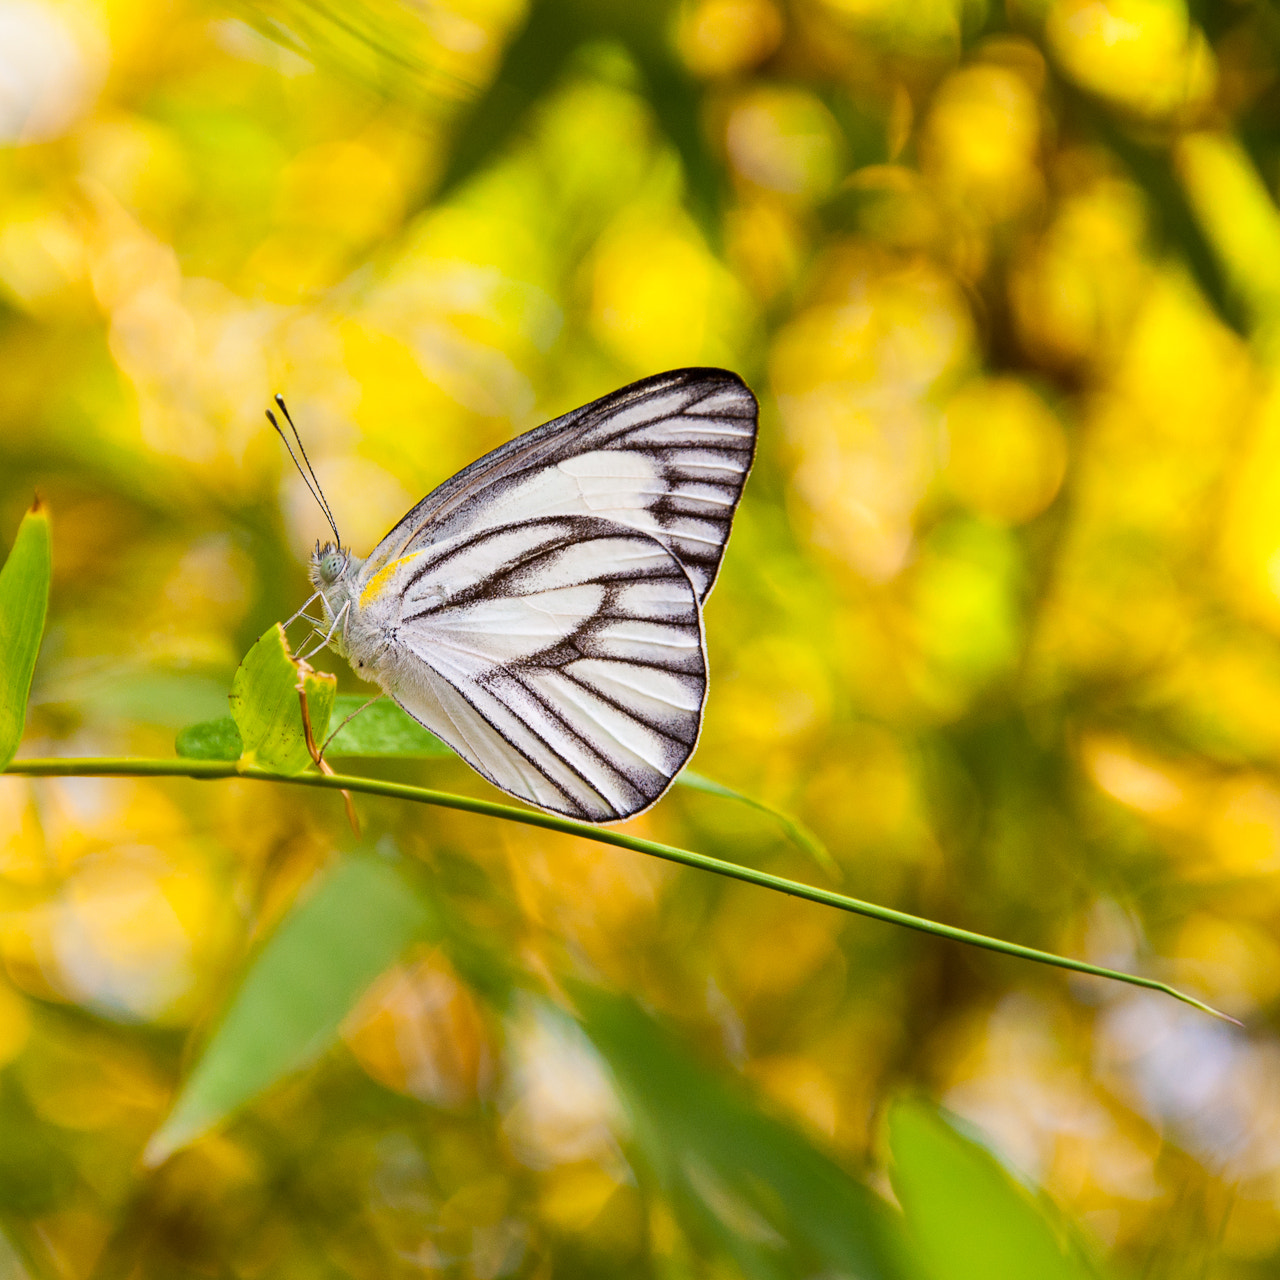 Photograph Butterfly by LiangJin Lim on 500px